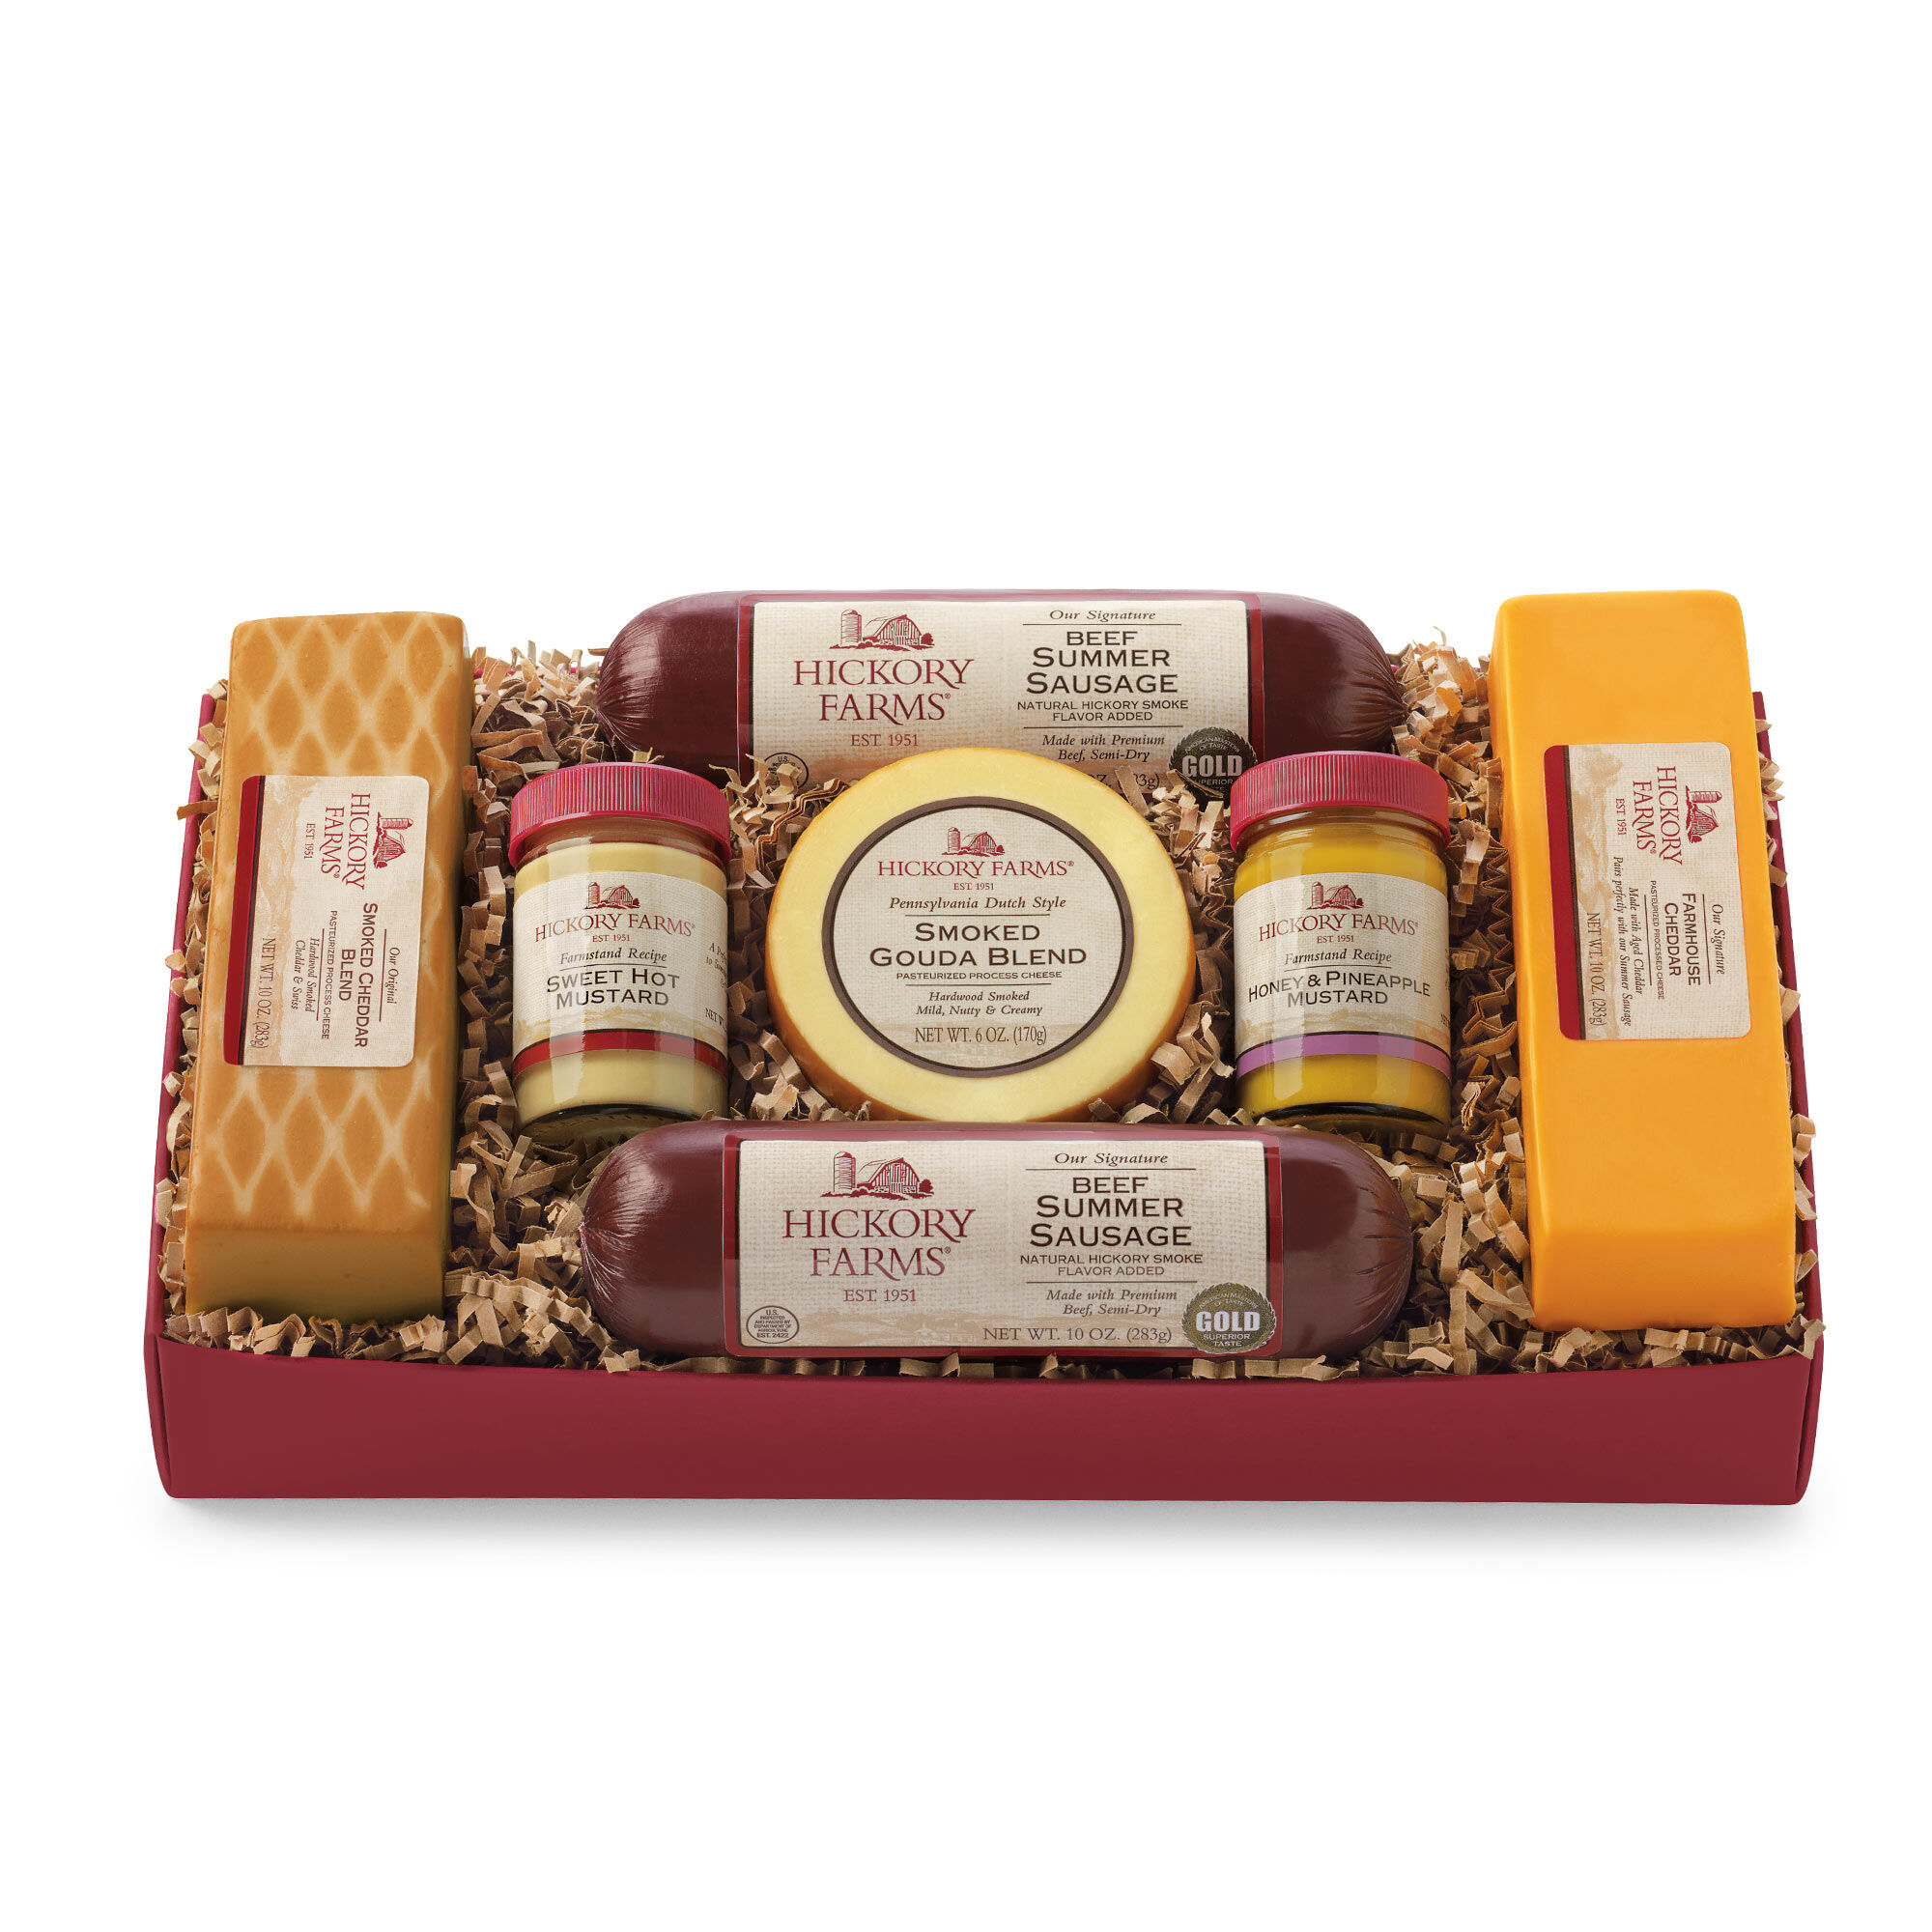 Gourmet Gift Boxes and Food Gifts | Hickory Farms